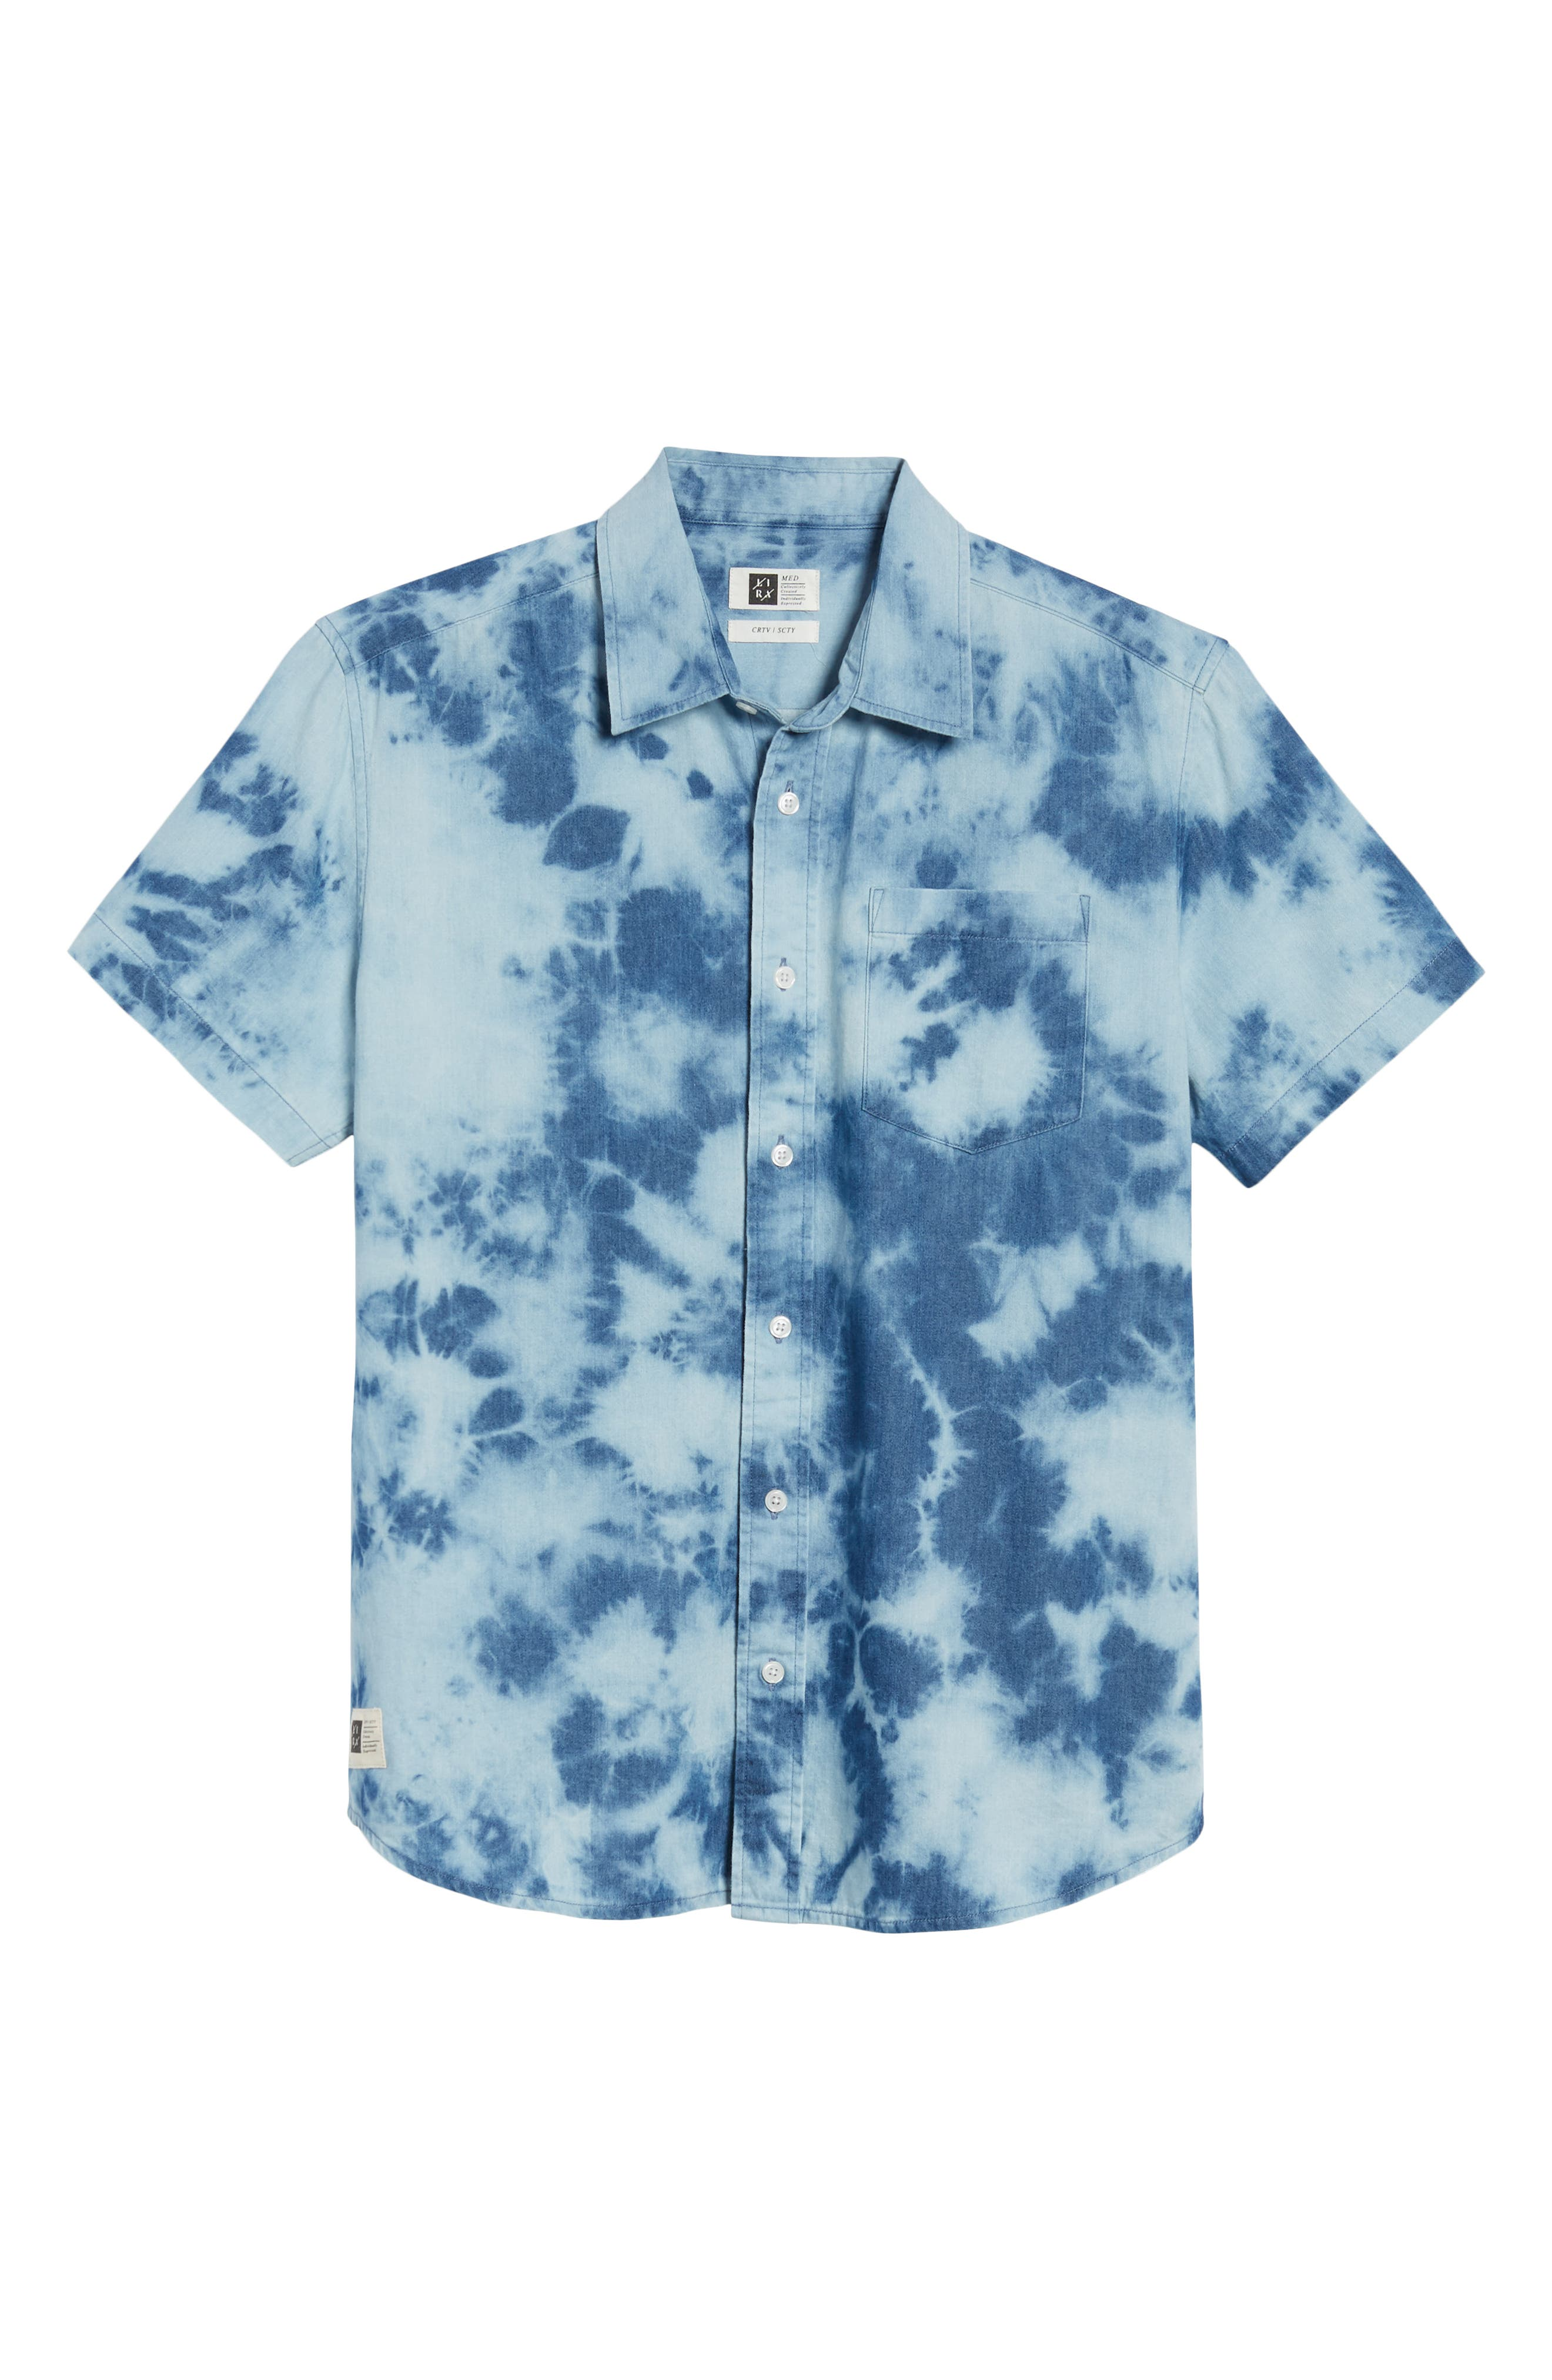 Bleacher Creature Woven Shirt,                             Alternate thumbnail 6, color,                             Blue